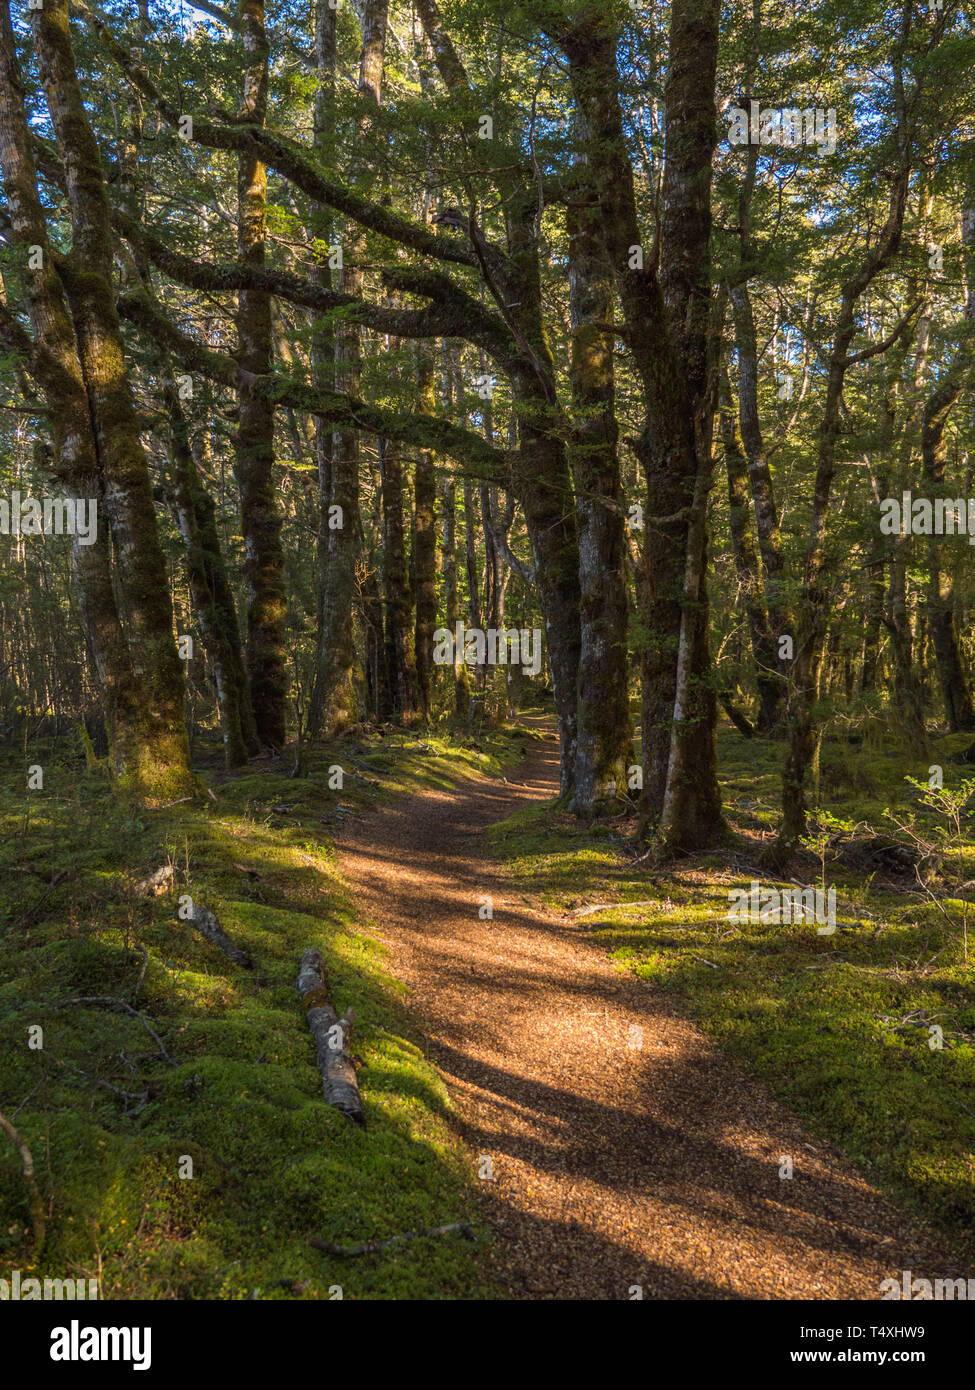 Vertical landscape of Kepler Track winding through beech forest with dappled sunlight streaming through the trees onto the track. - Stock Image